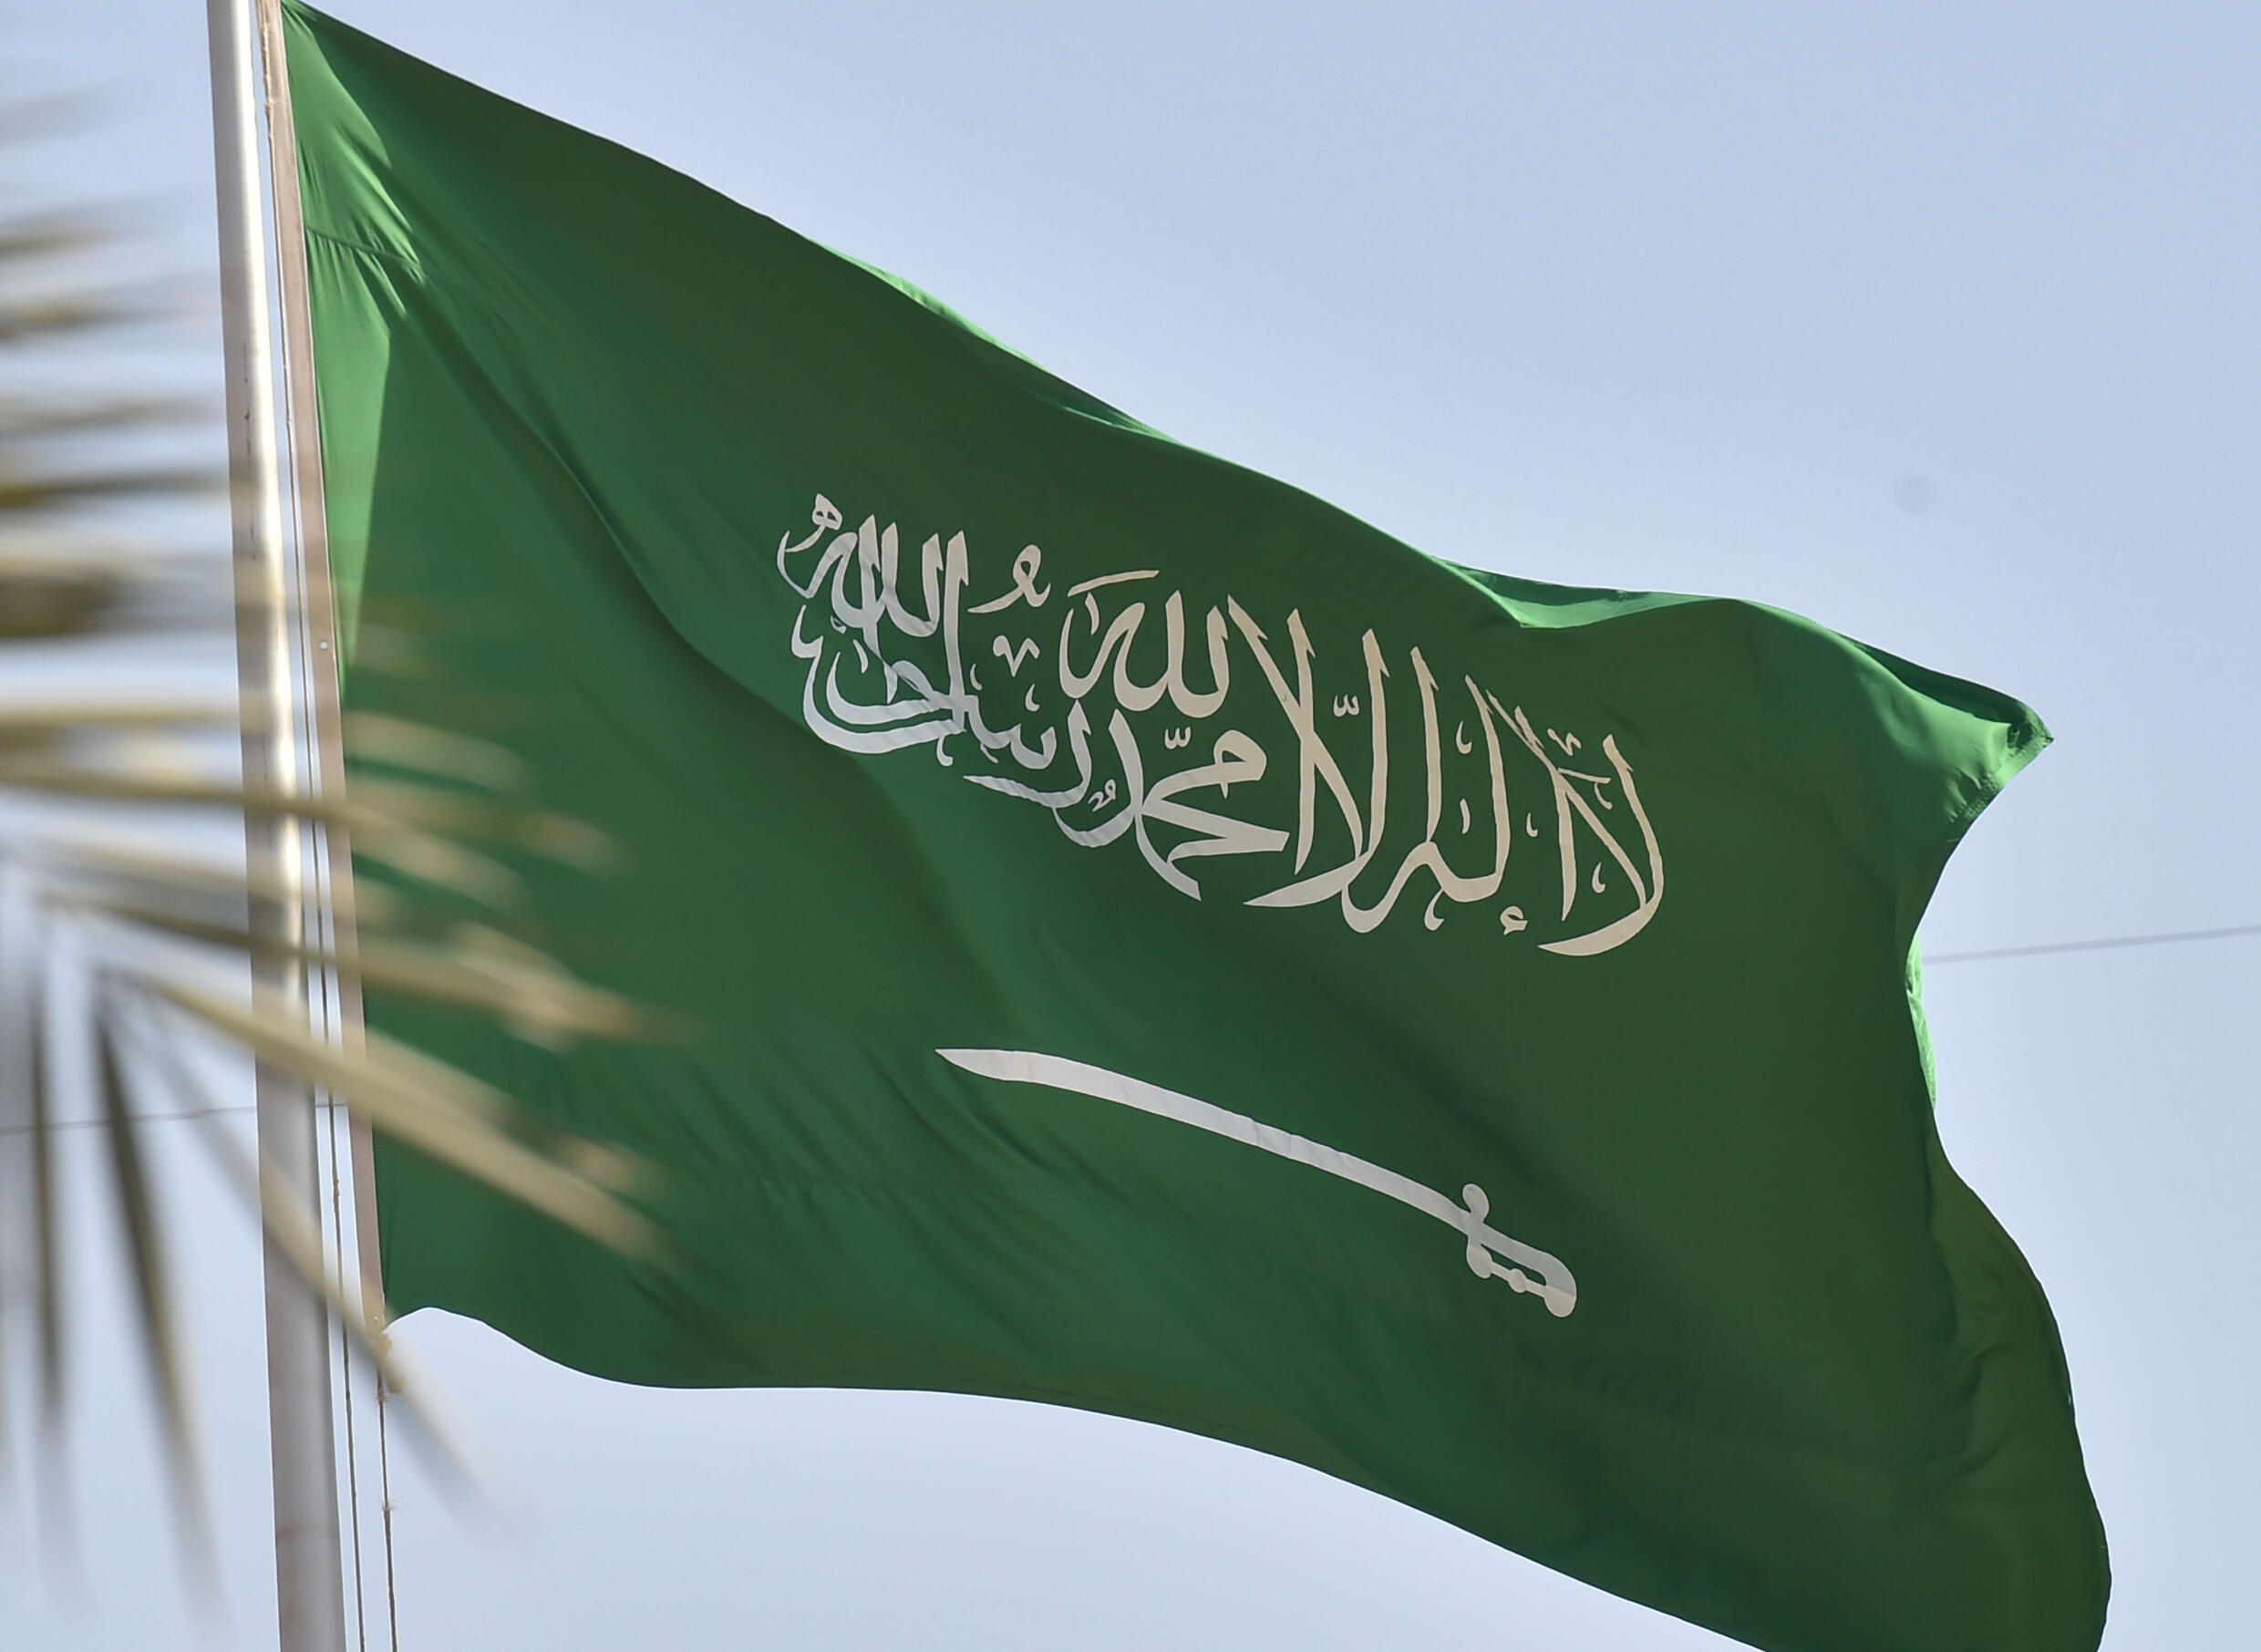 Saudi Arabia has been repeatedly targeted by Yemen's Shiite Huthi rebels since its intervention in the Yemen war in 2015